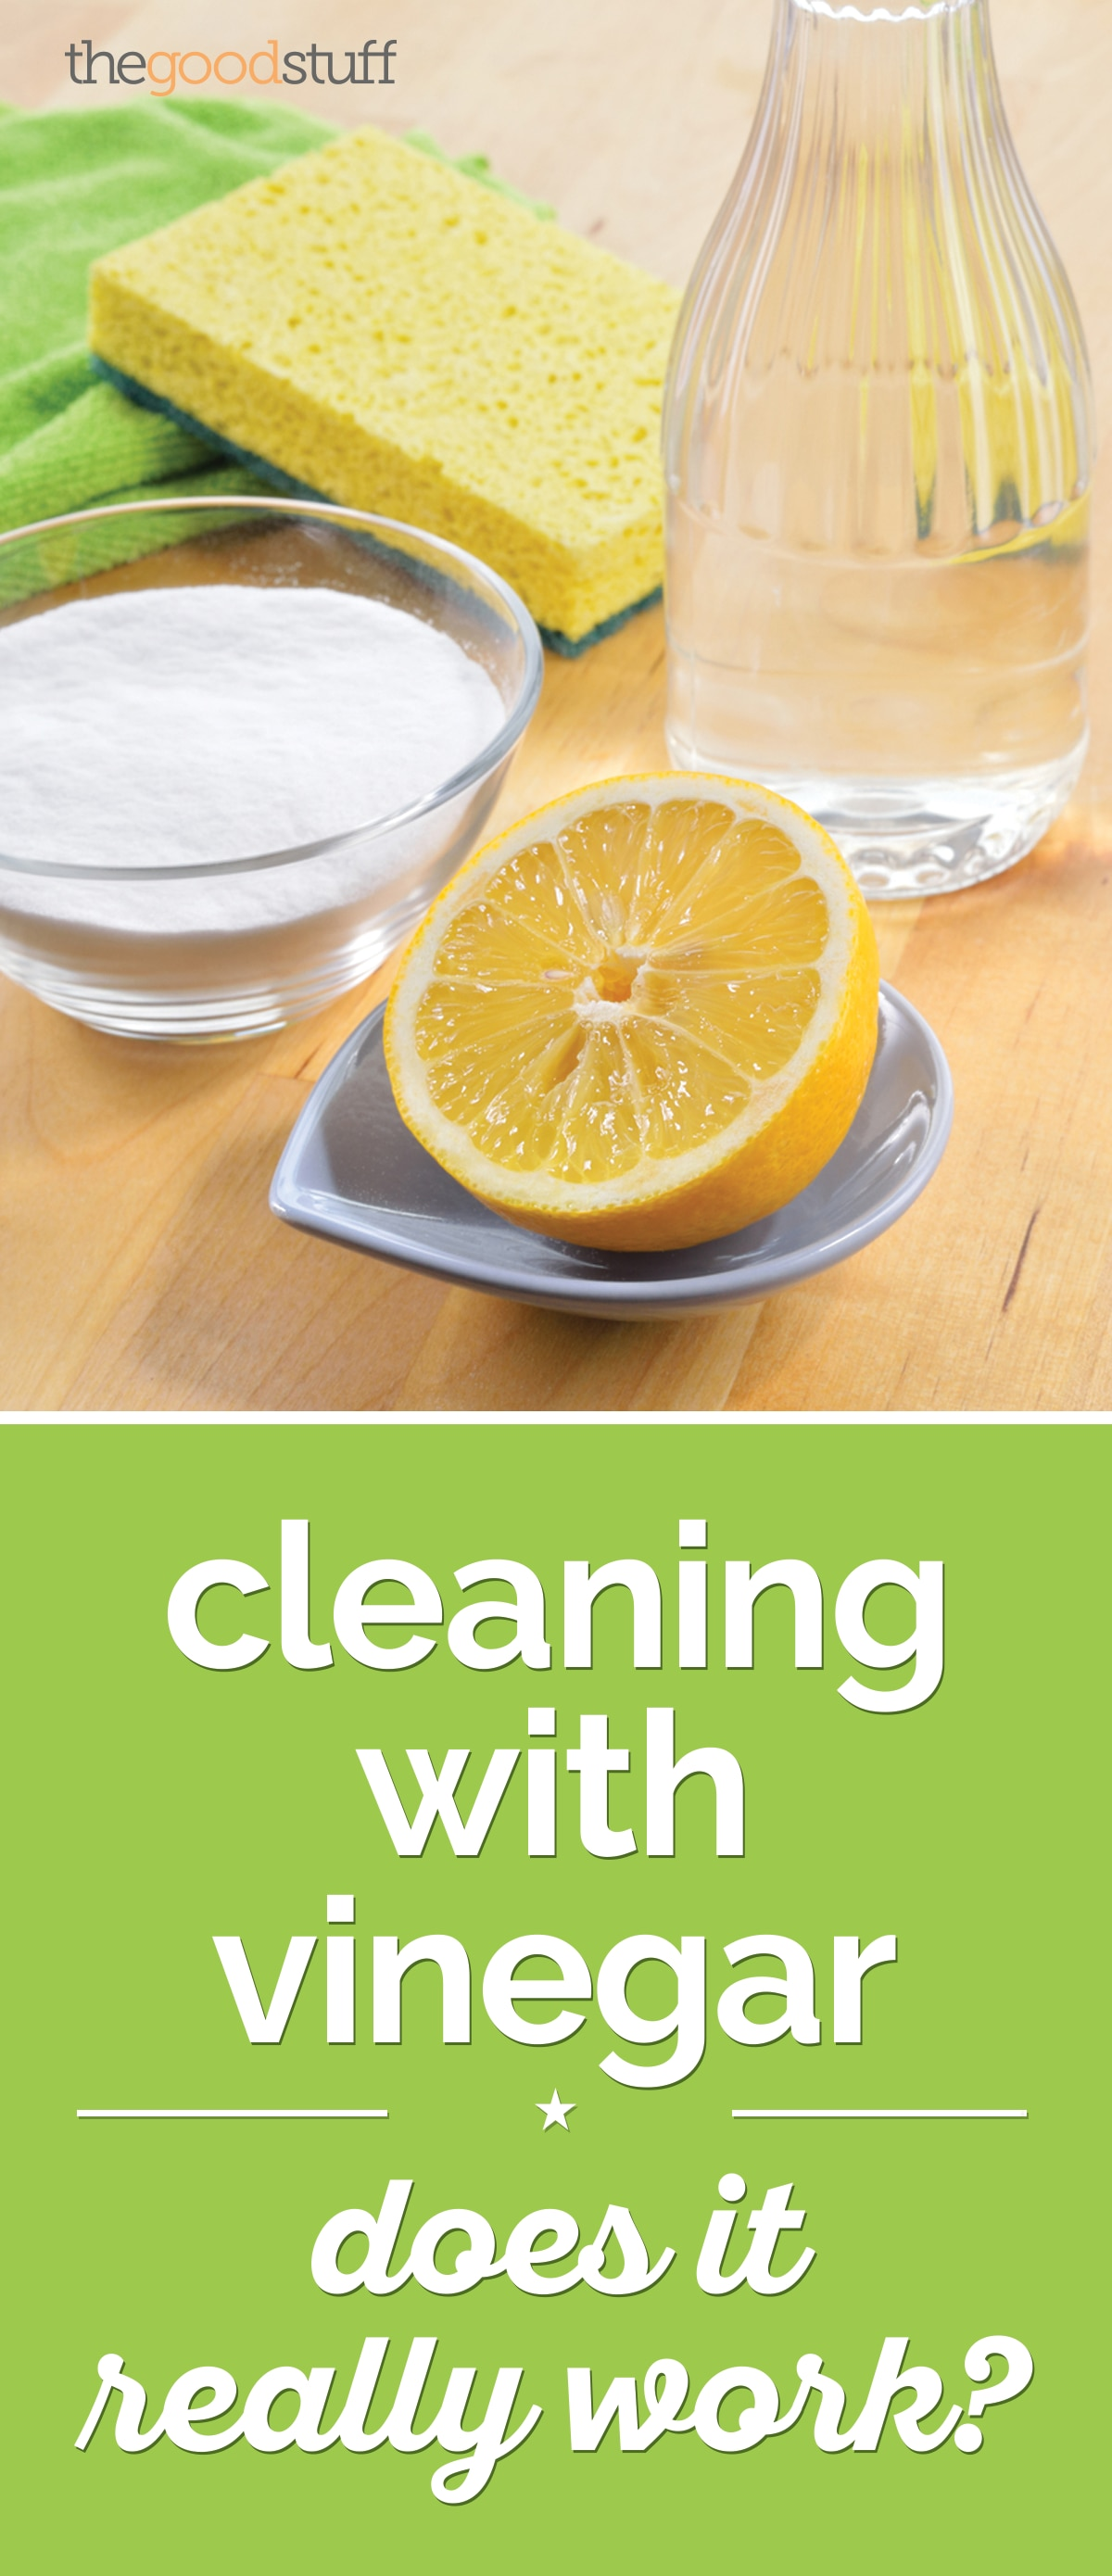 Cleaning With Vinegar Does It Really Work Thegoodstuff